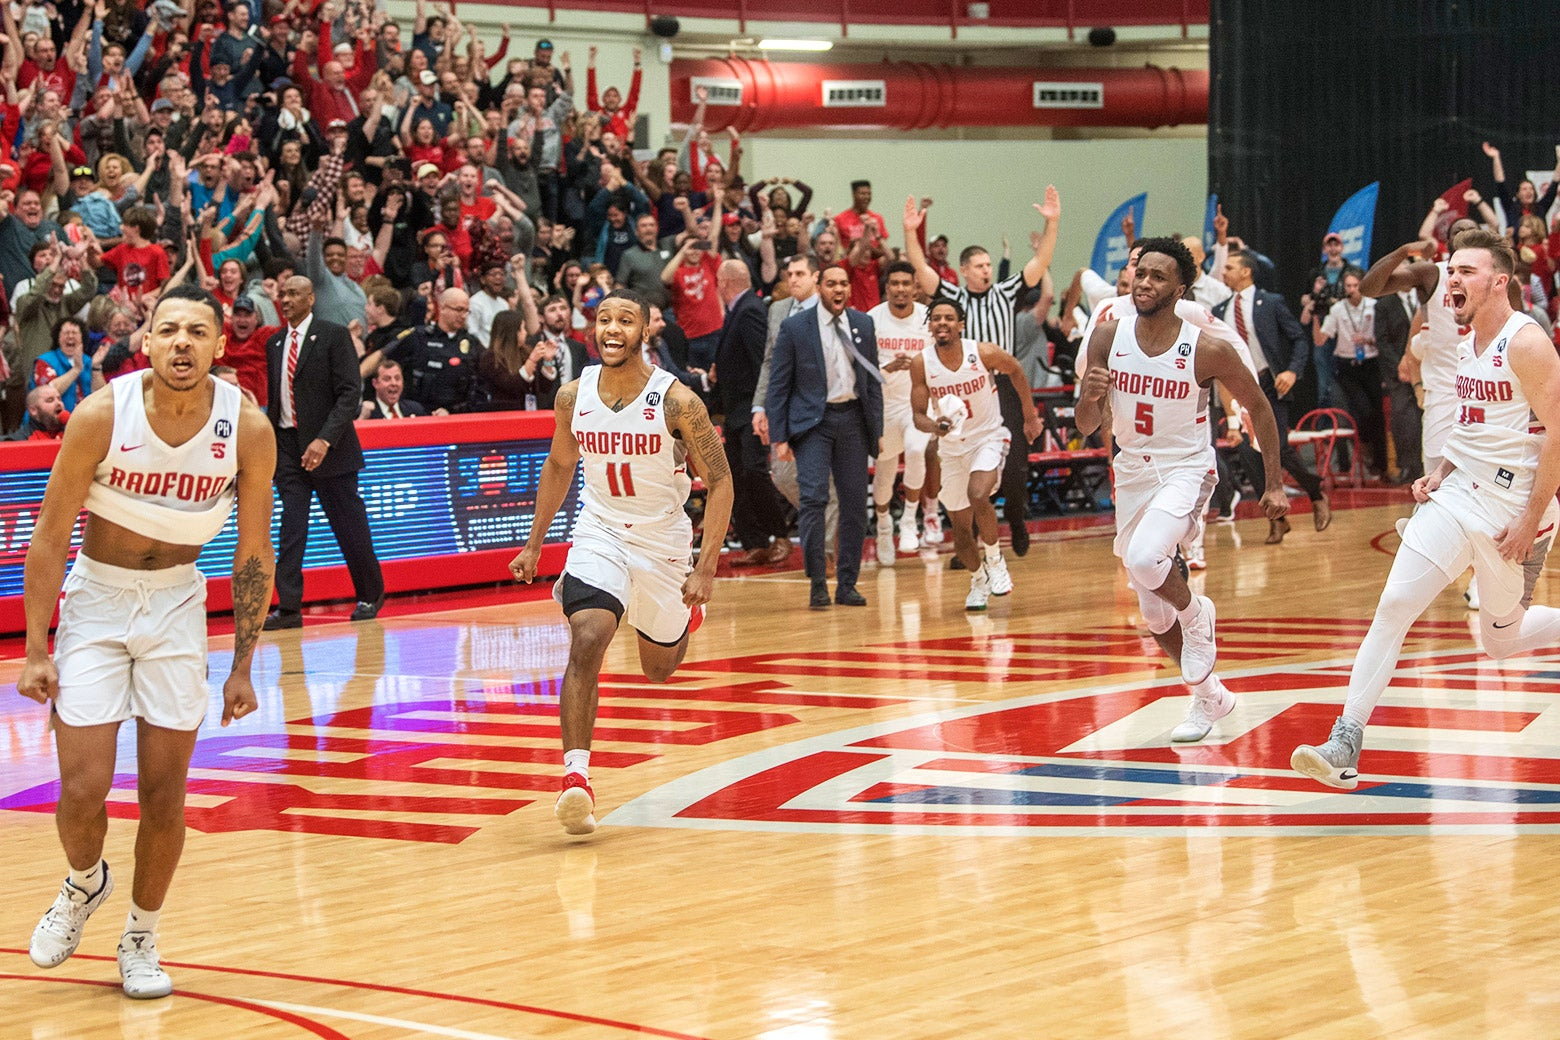 Radford guard Carlik Jones, left, celebrates after sinking a three-point basket to win as teammates Travis Fields Jr. (11), Donald Hicks (5) and Caleb Tanner, right, also celebrate after the Big South Conference championship NCAA college basketball game against Liberty on Sunday, Mar. 4, 2018.